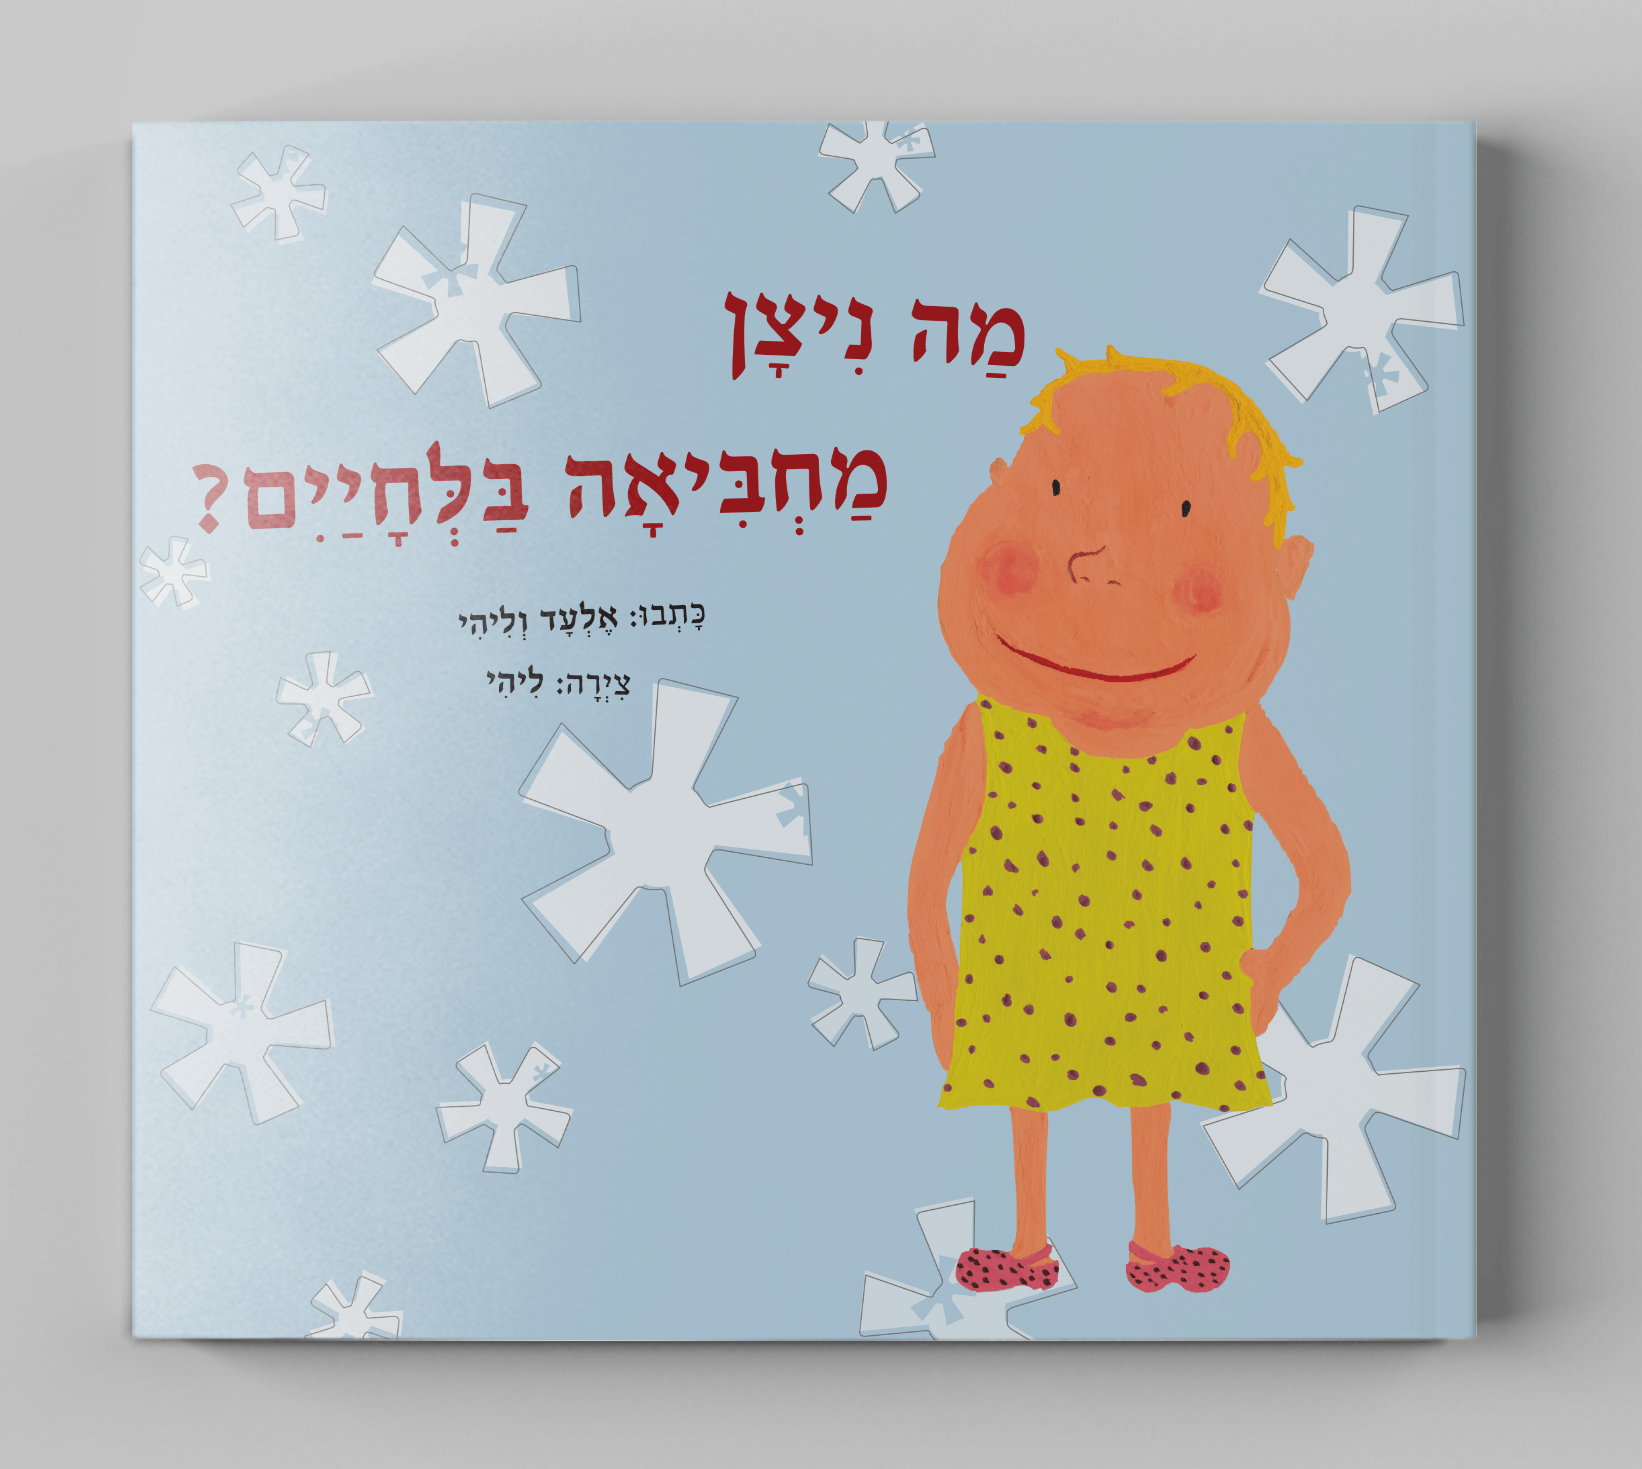 http://bigeyes.co.il/wp-content/uploads/2019/04/Nitzan-cover.png